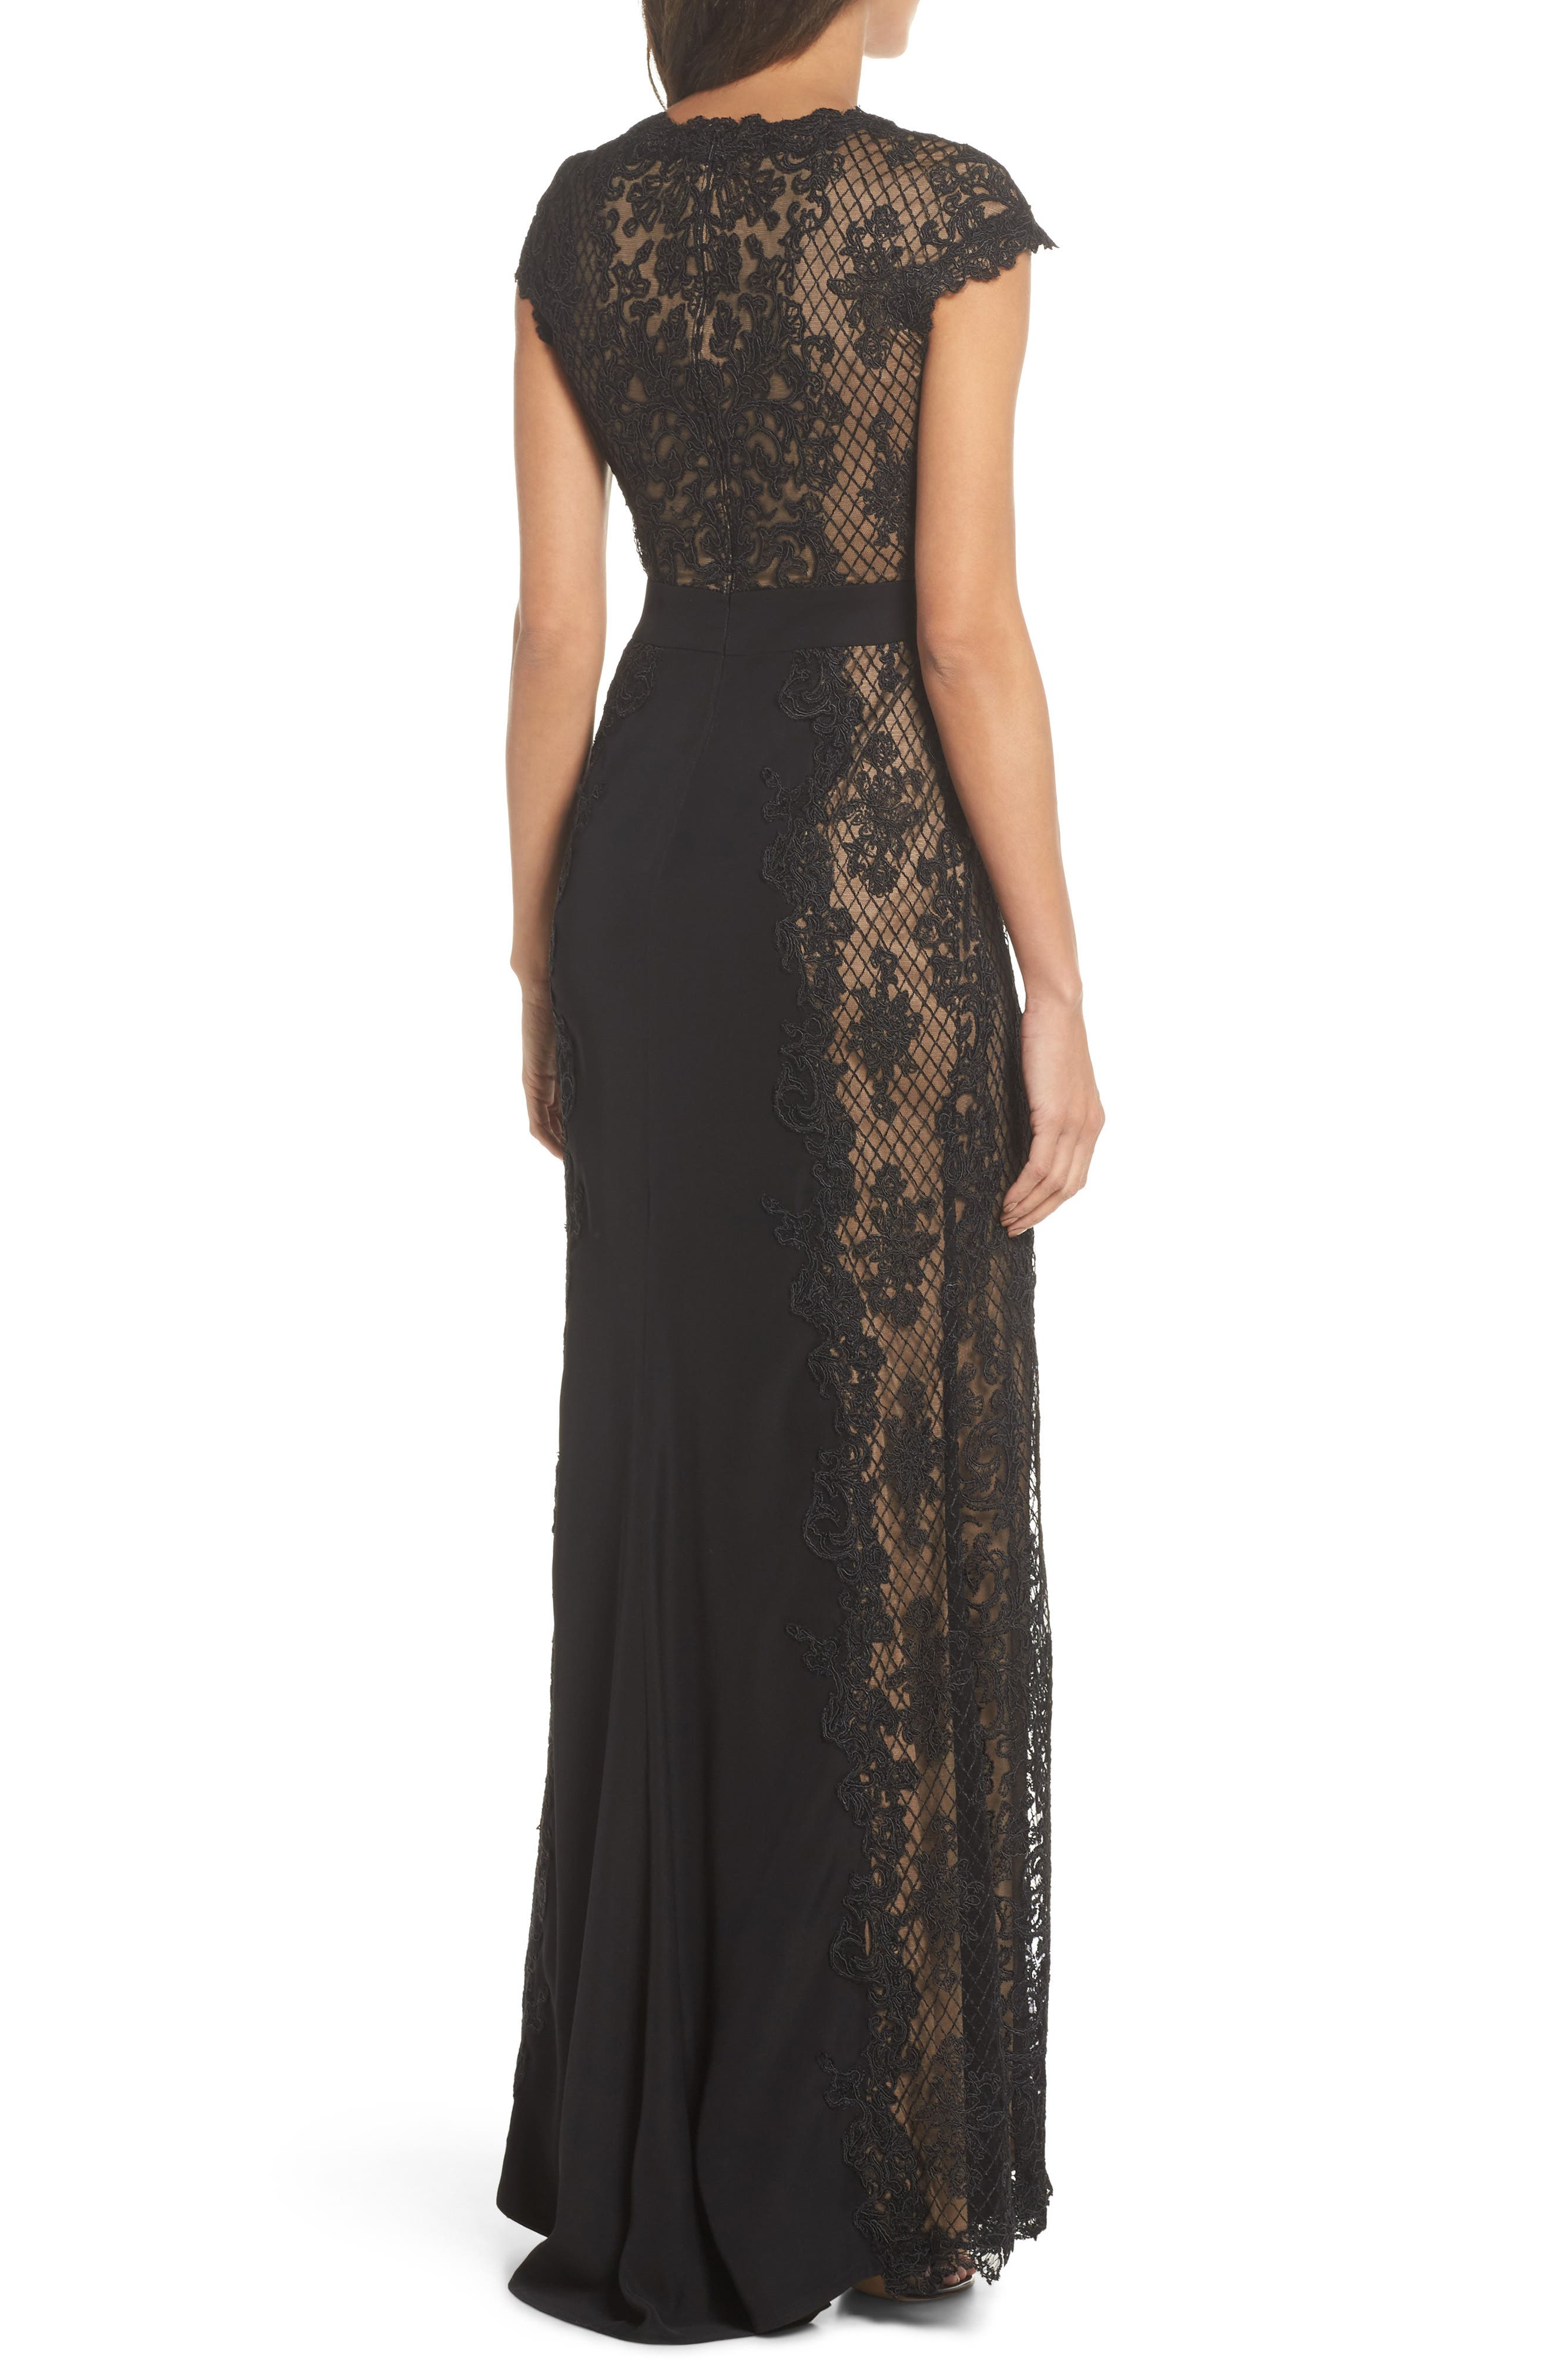 Lace Gown,                             Alternate thumbnail 2, color,                             Black/ Nude